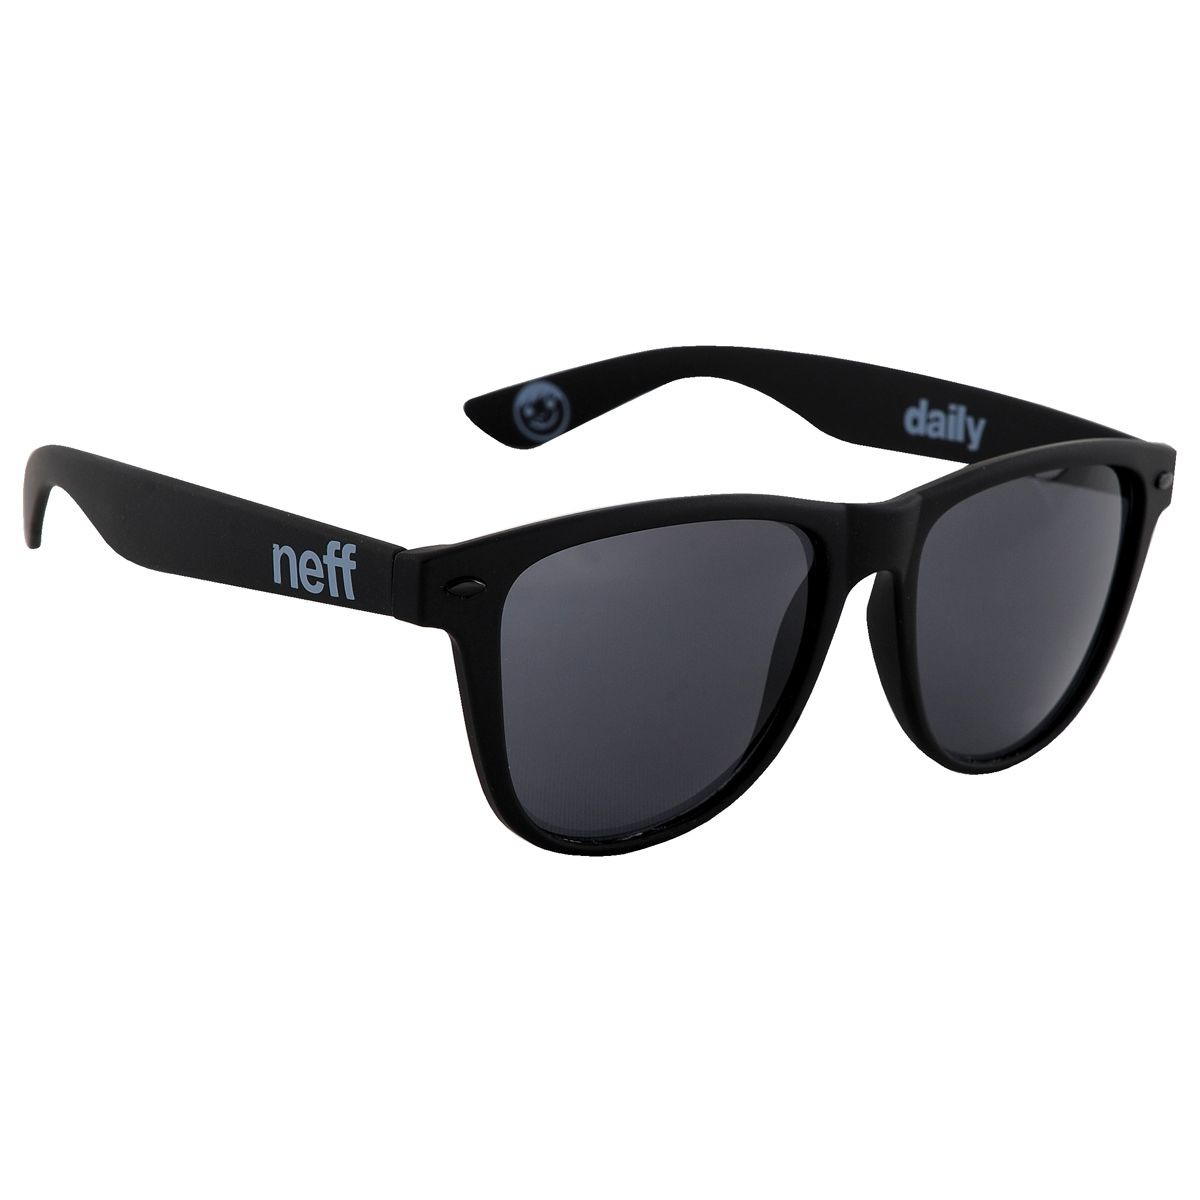 Neff Daily Sunglasses - Matte Black